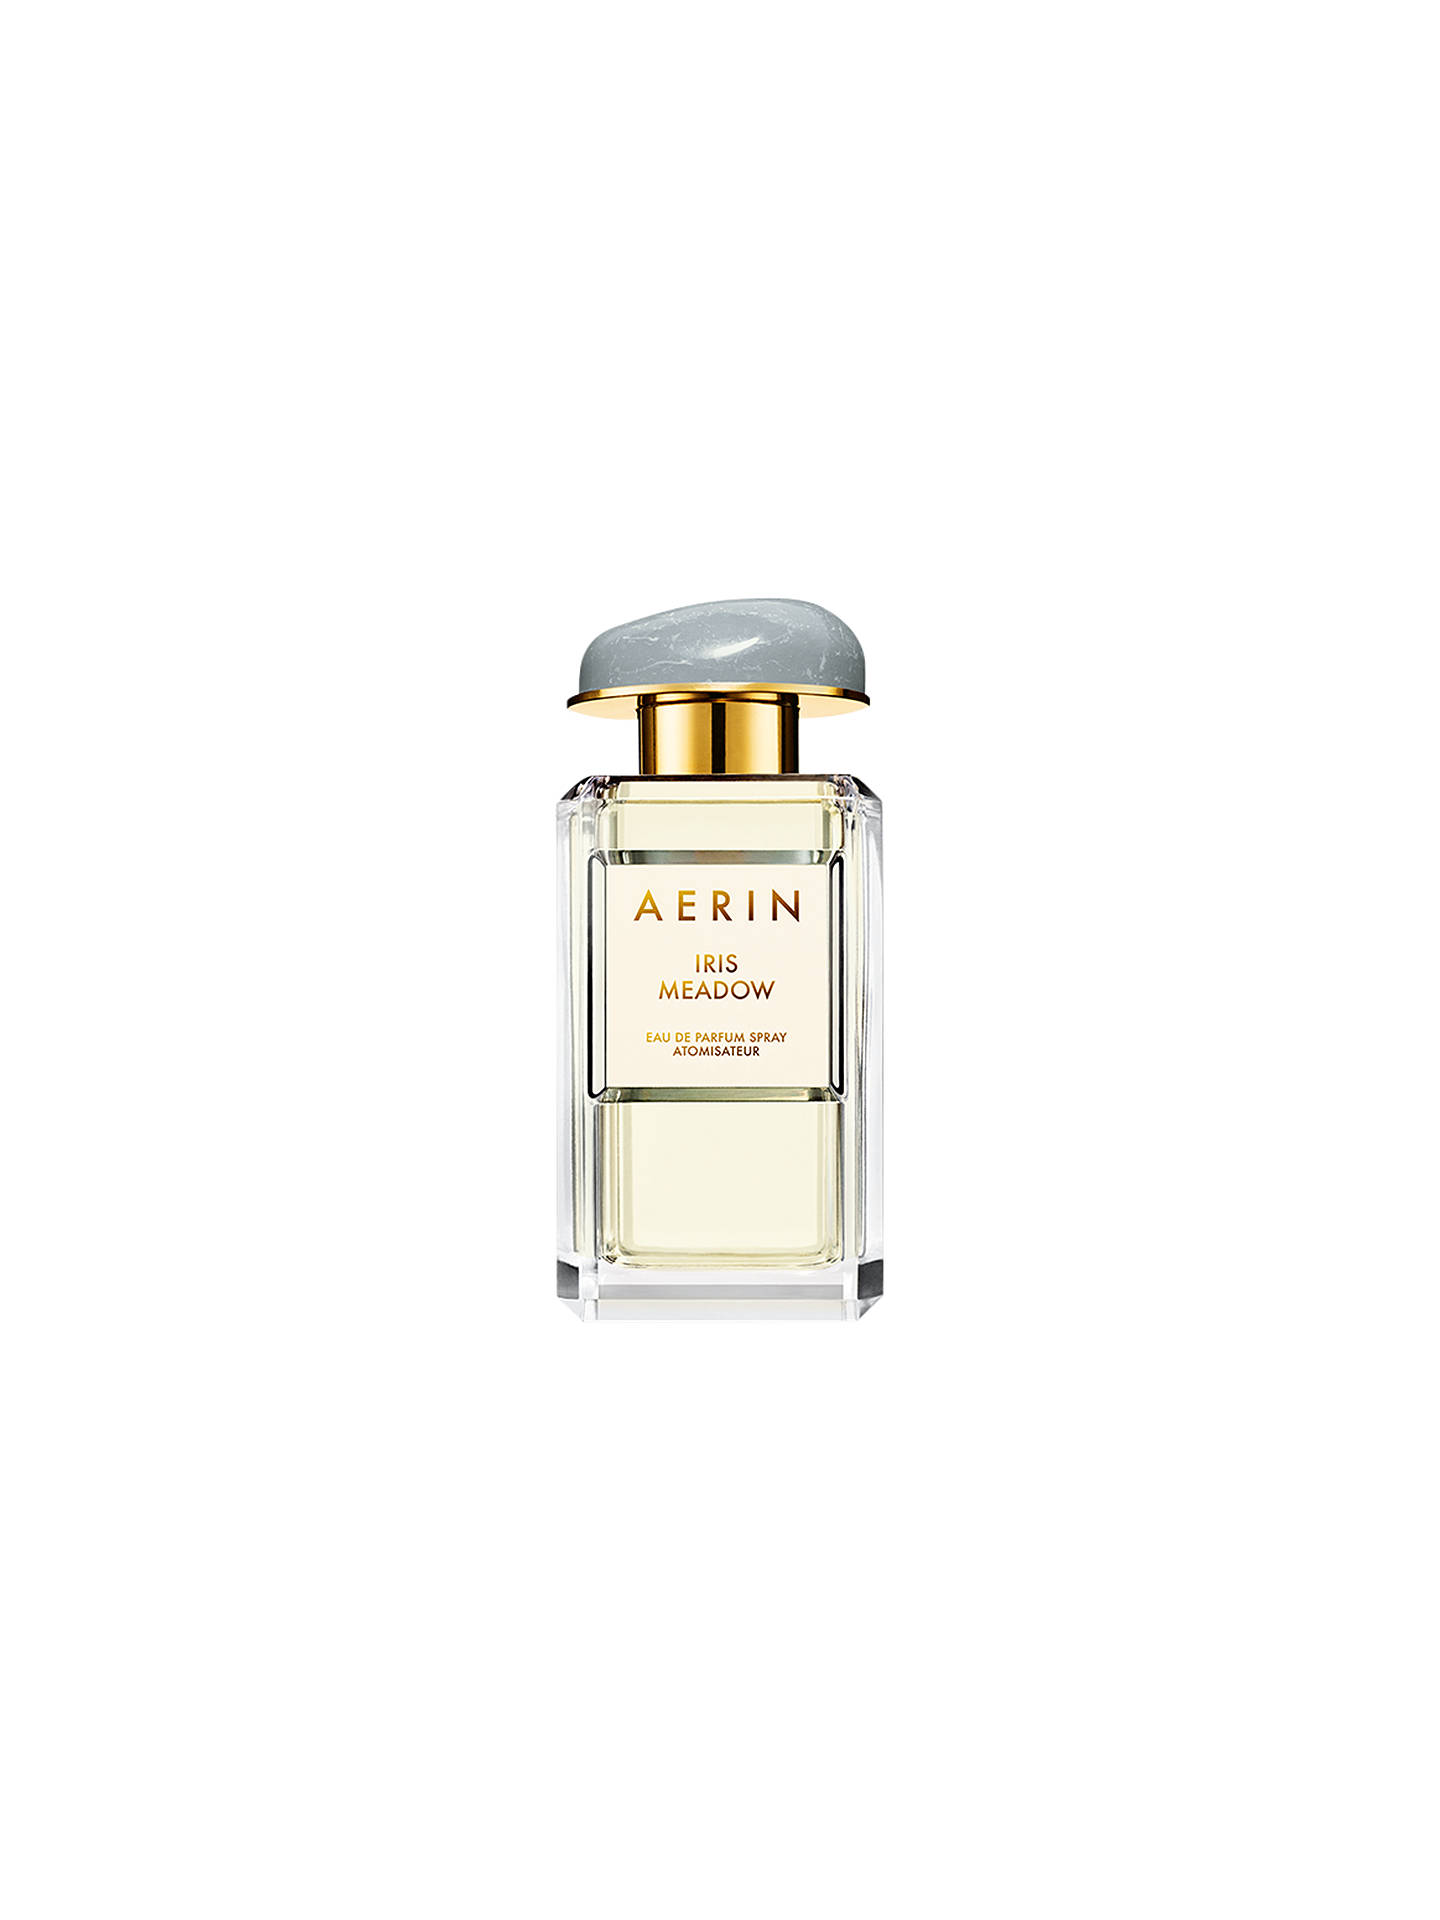 Aerin Iris Meadow Eau De Parfum, 50ml by Aerin